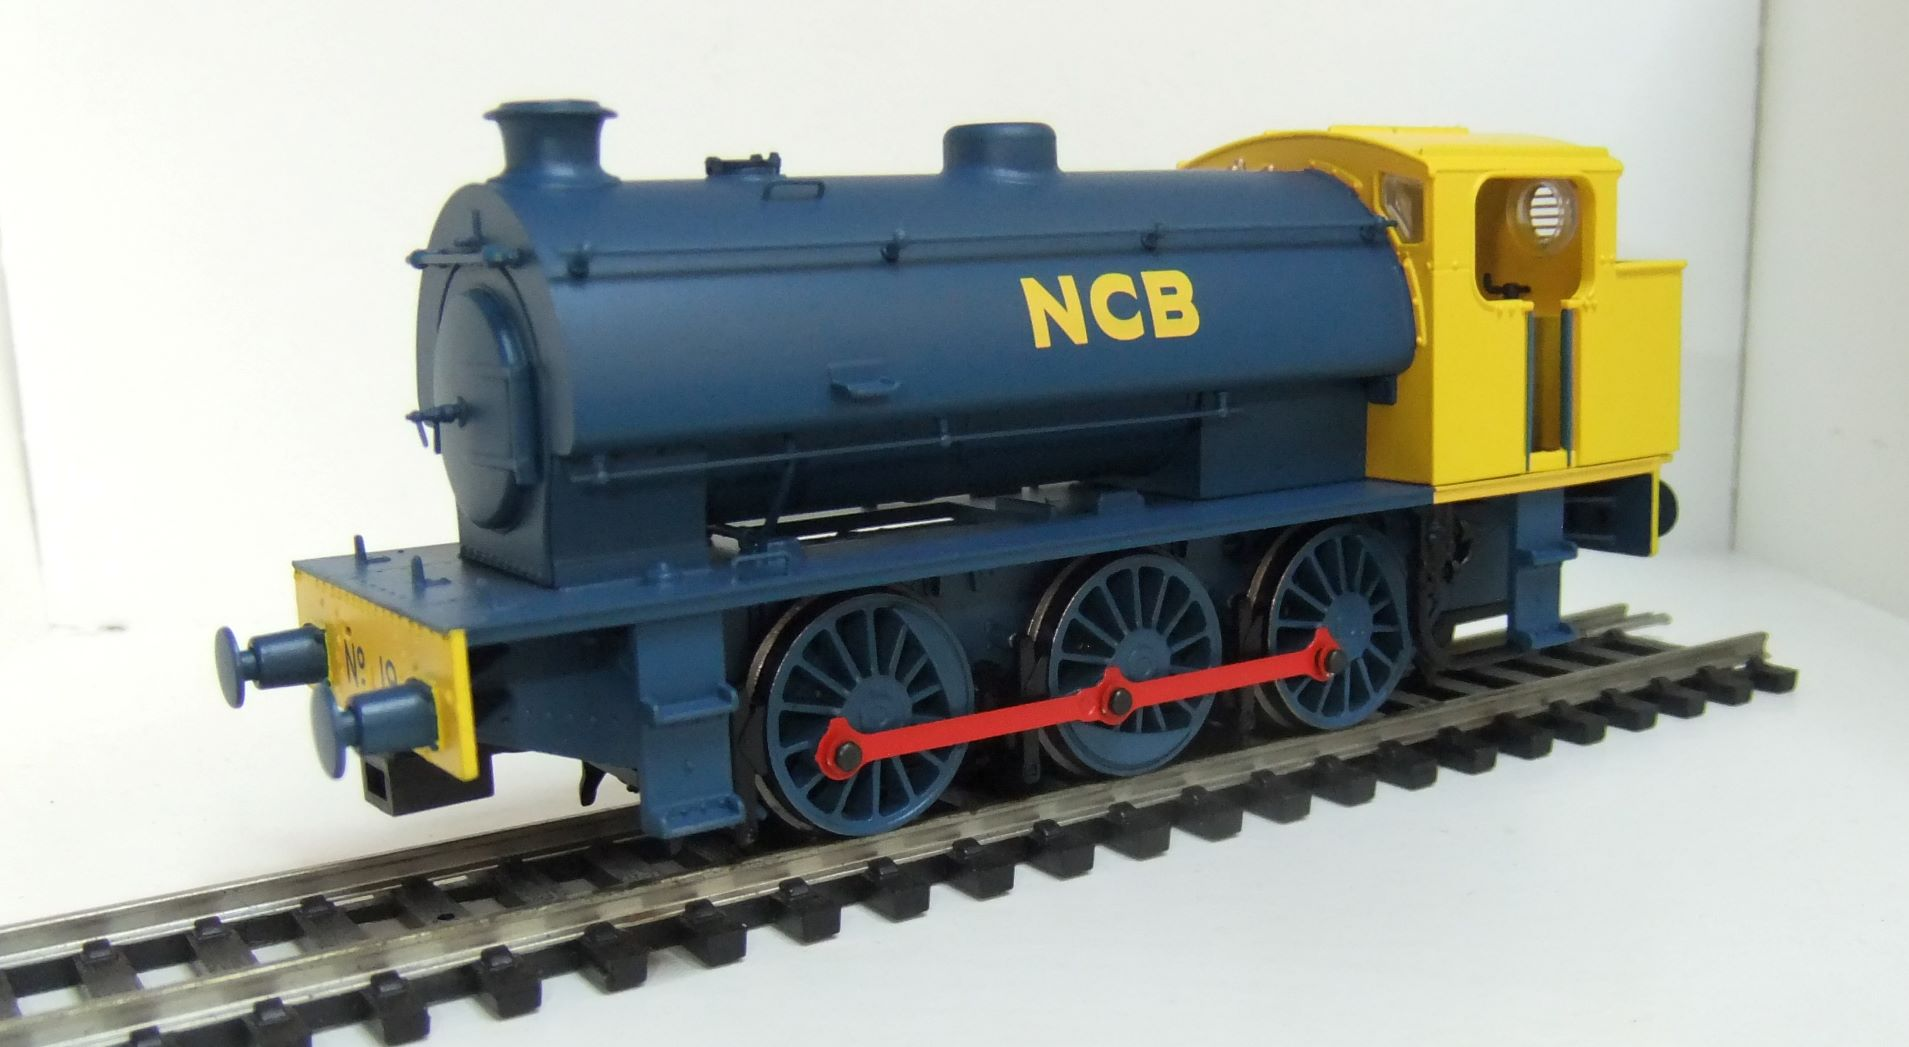 E85003 J94 National Coal Board